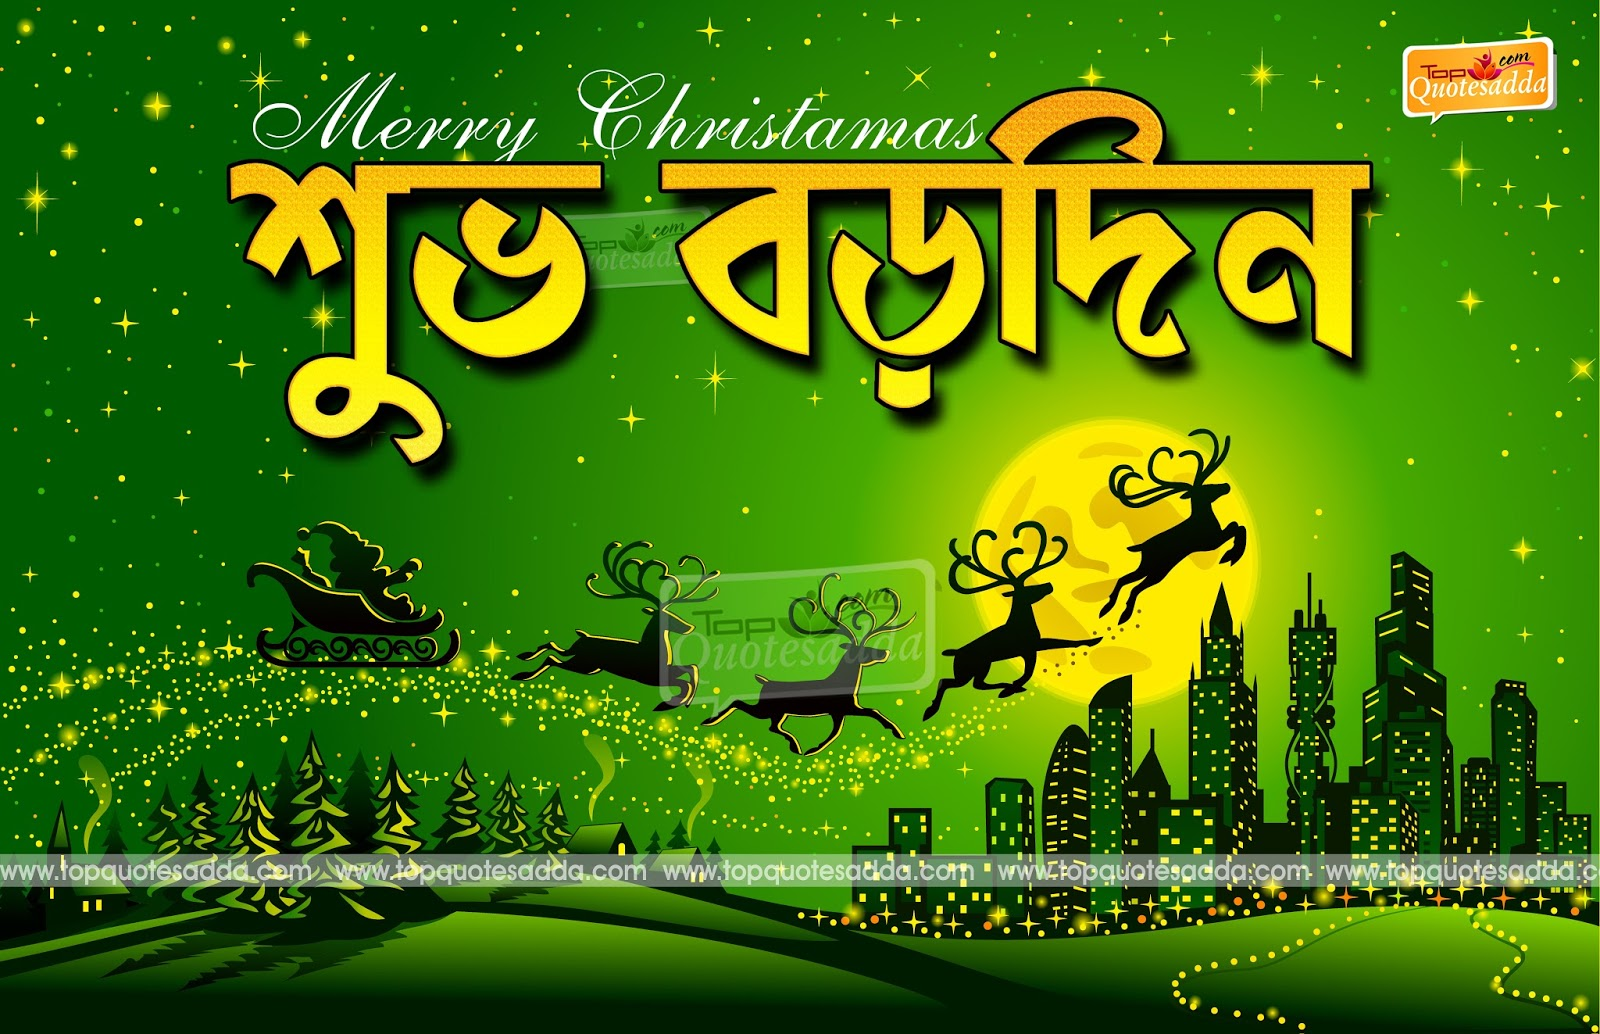 Bengali images of christmas greetings for facebook topquotesadda bengali christmas greetings quotes and greetings hd images m4hsunfo